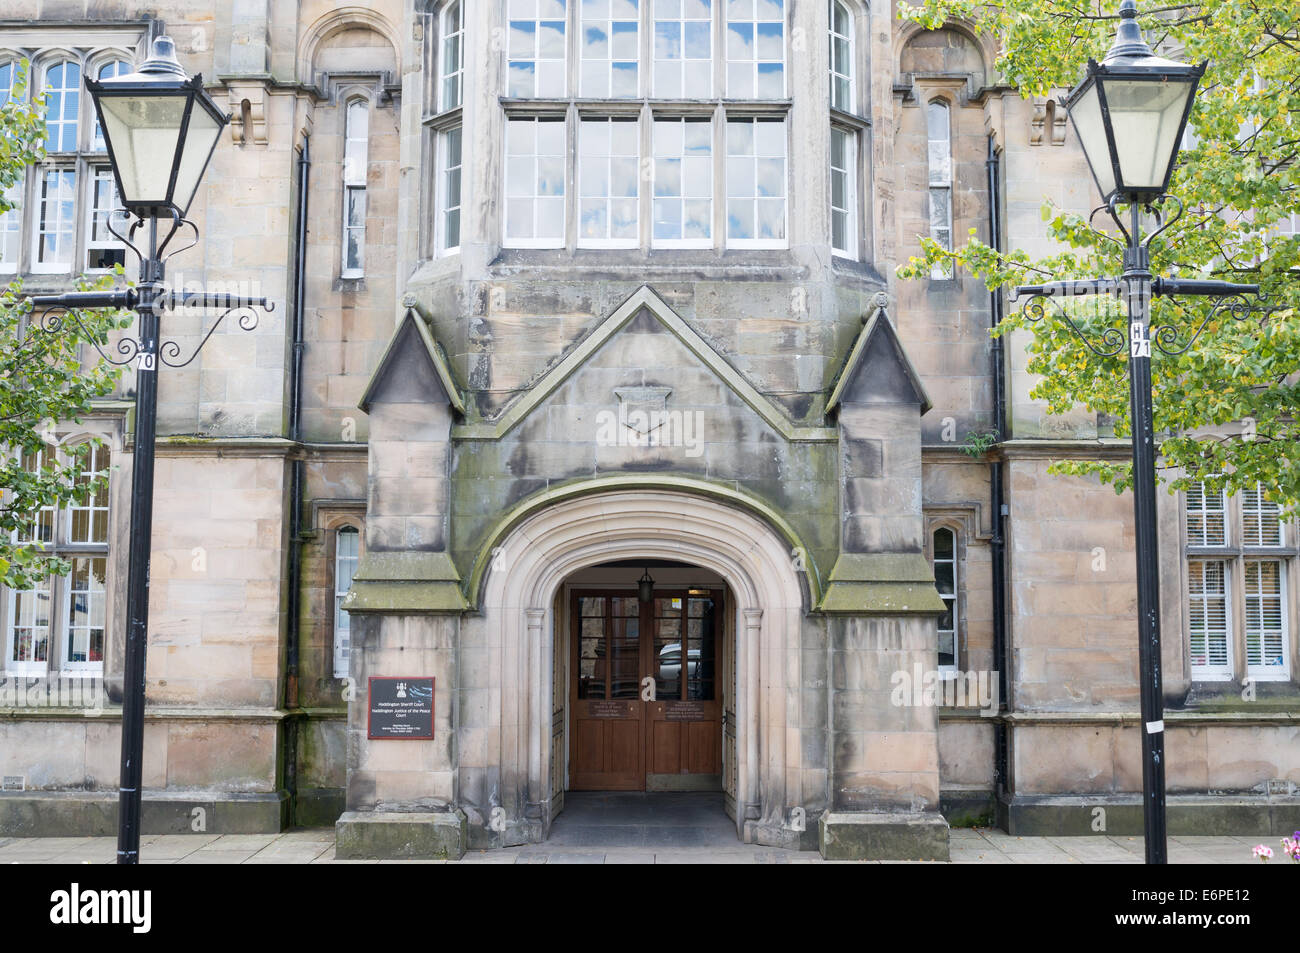 Haddington Sheriff court, East Lothian,  Scotland, Europe - Stock Image